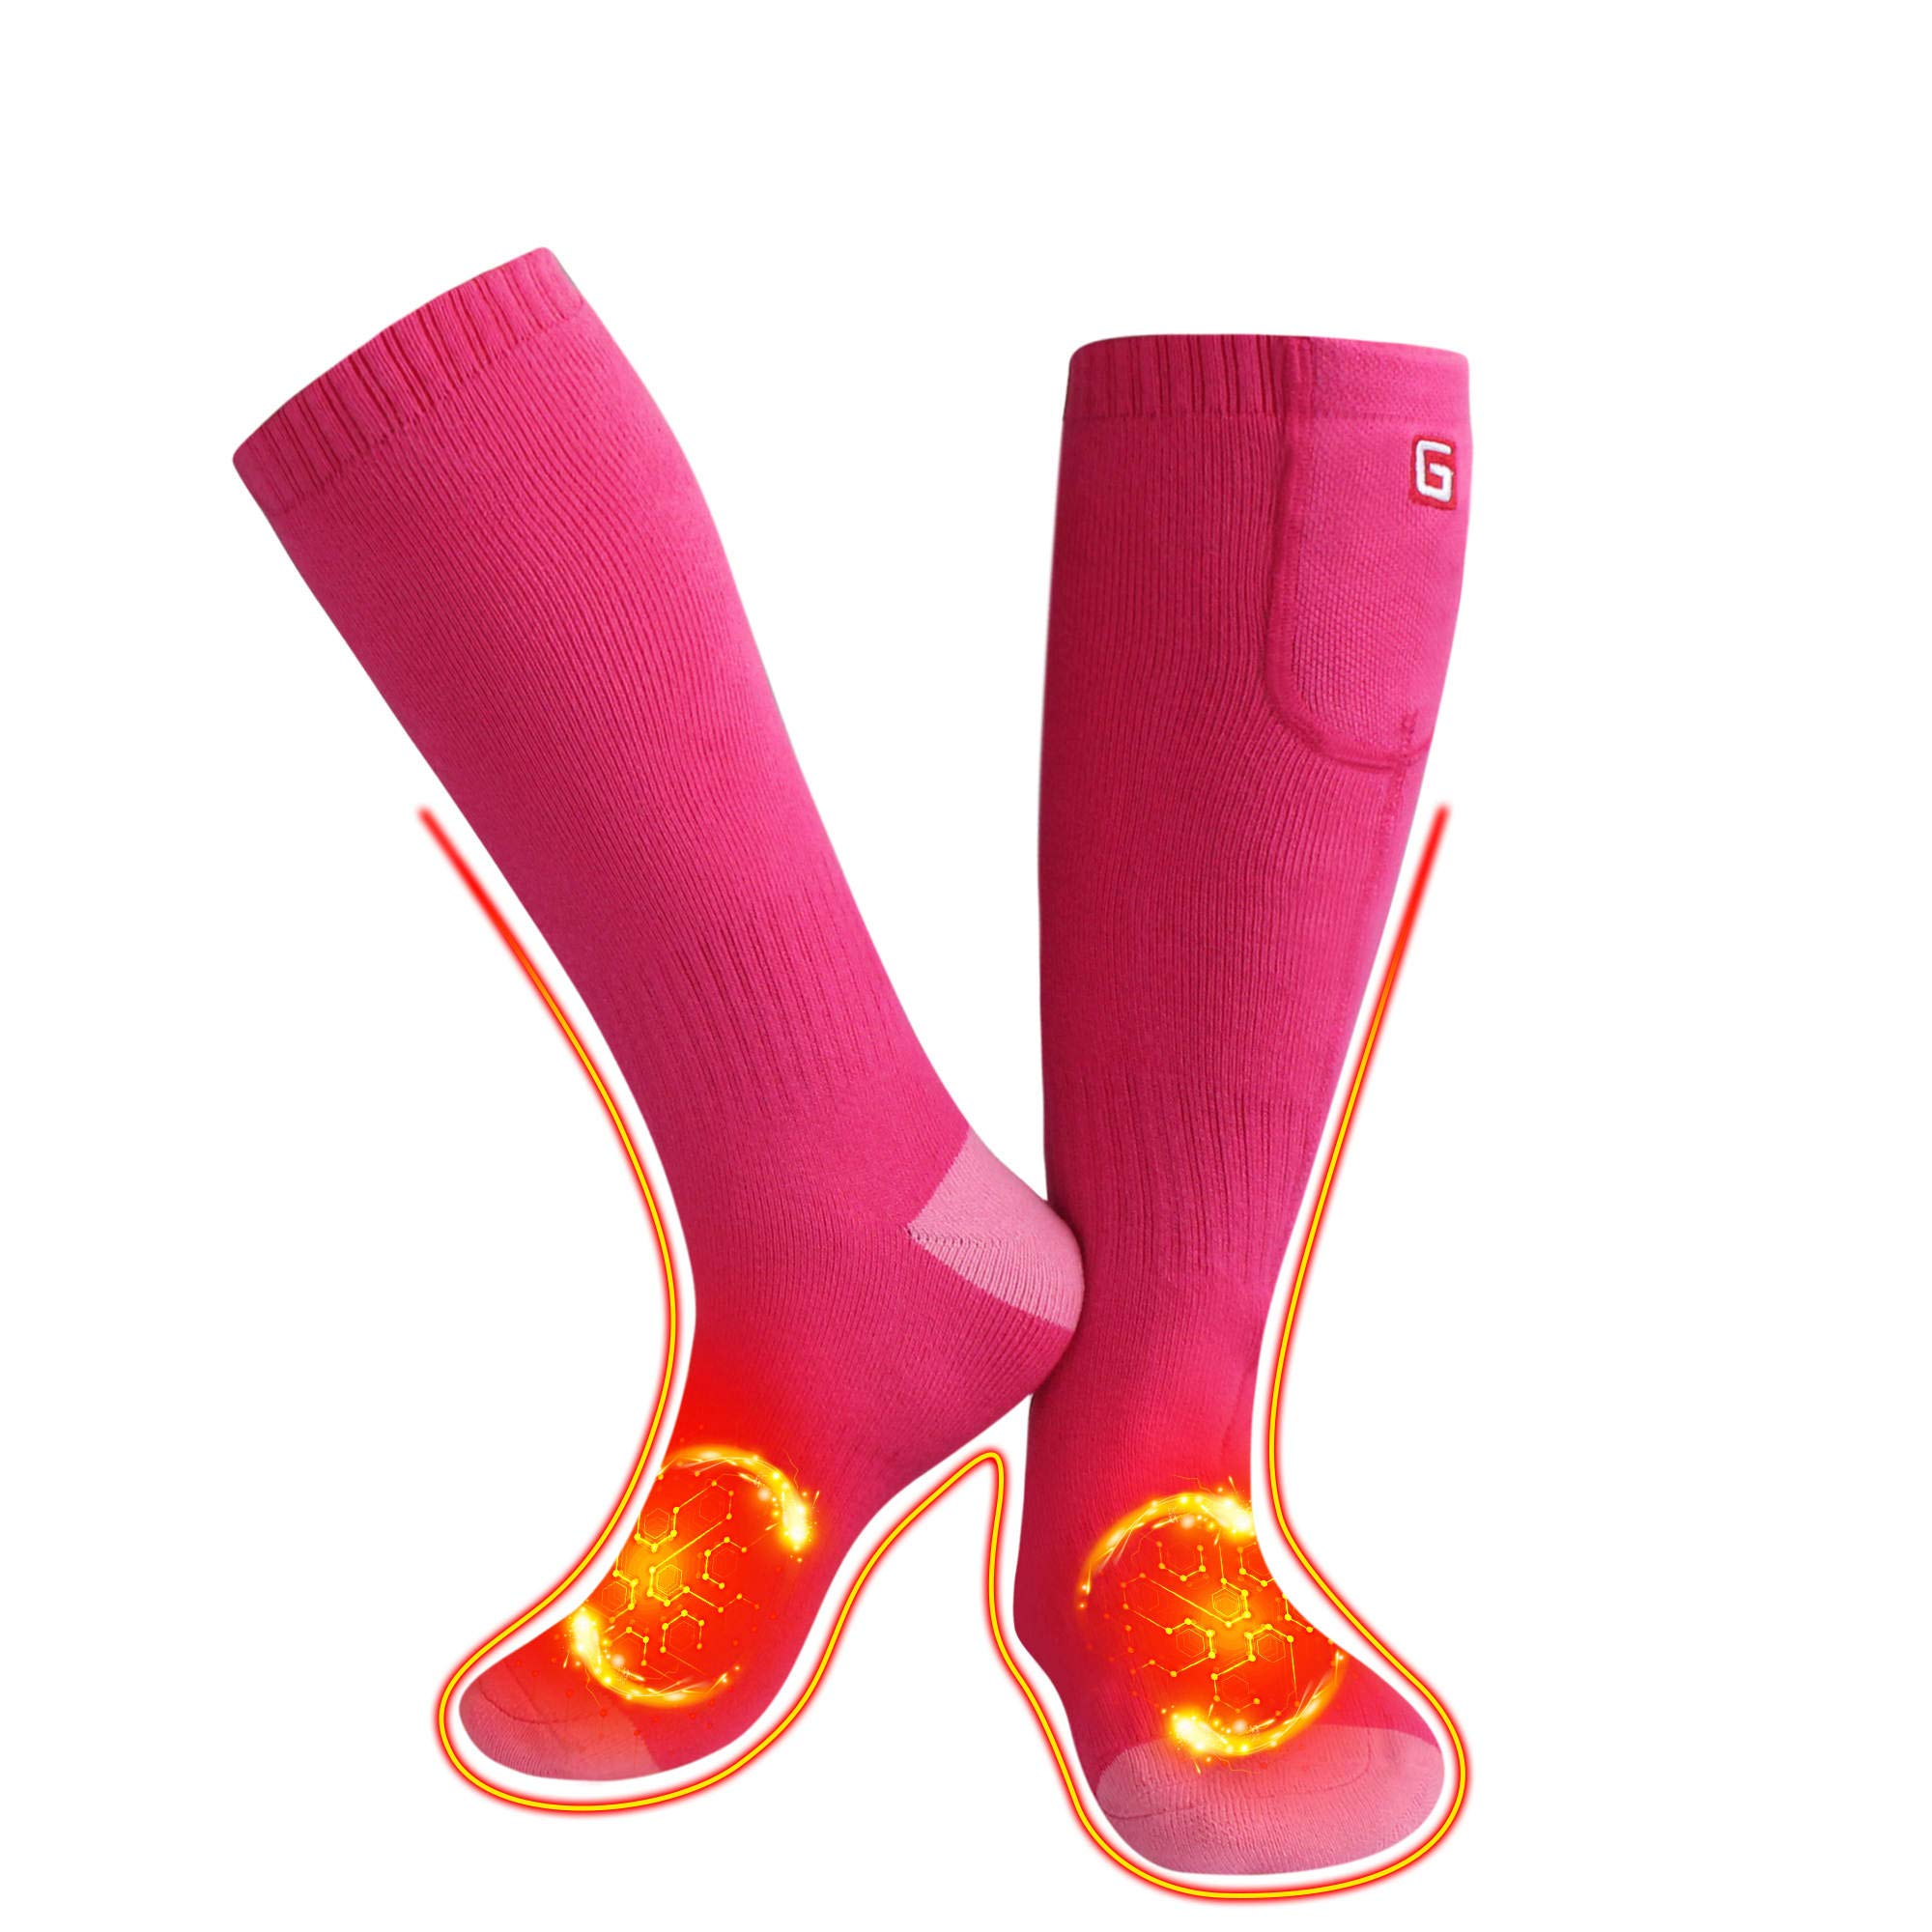 QILOVE Electric Rechargeable Heated Socks Foot Warmer Battery Powered Novelty Heating Sox by QILOVE